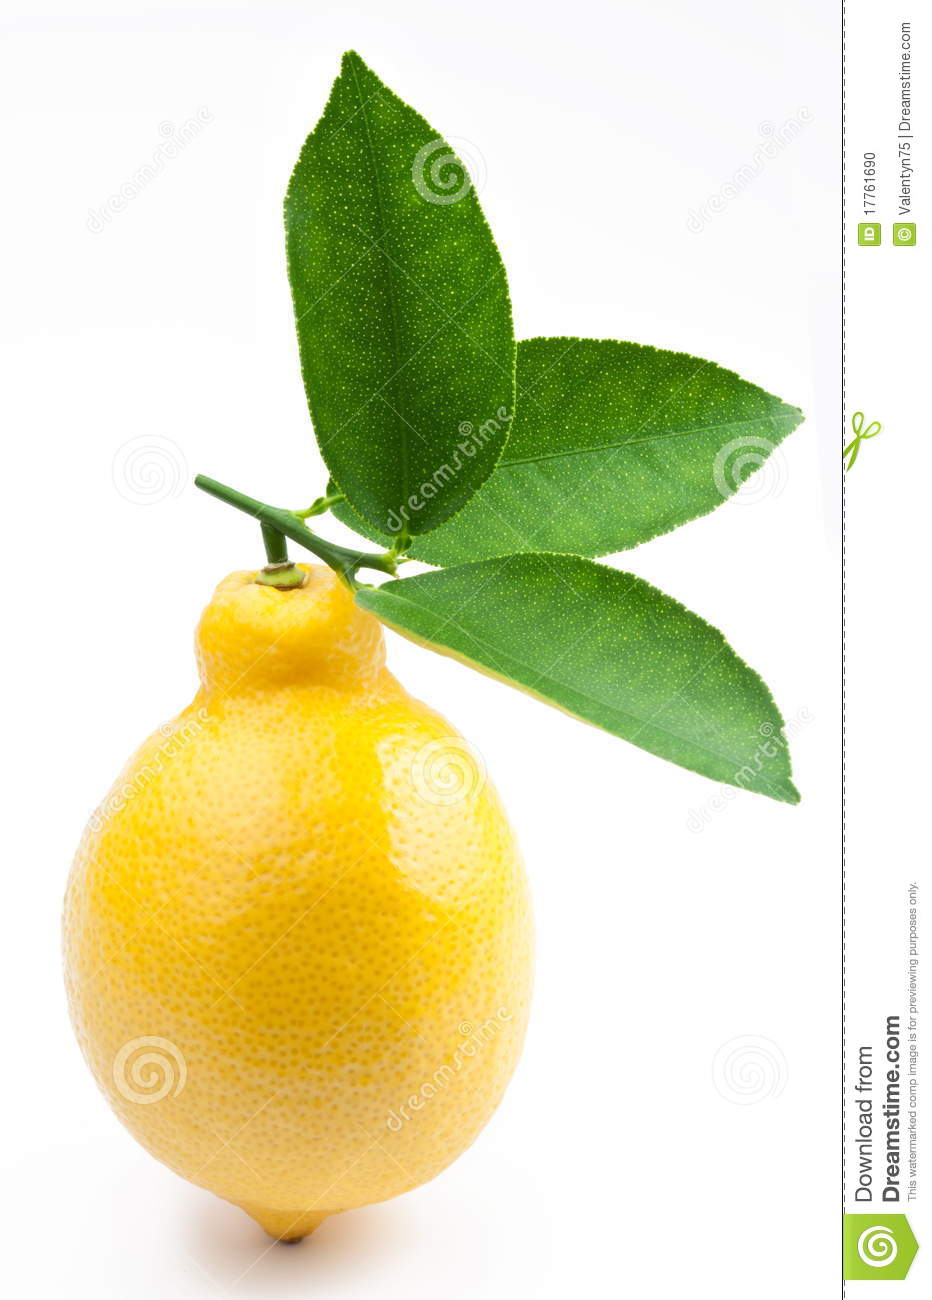 High-quality Photo Of Ripe Lemon Stock Photo